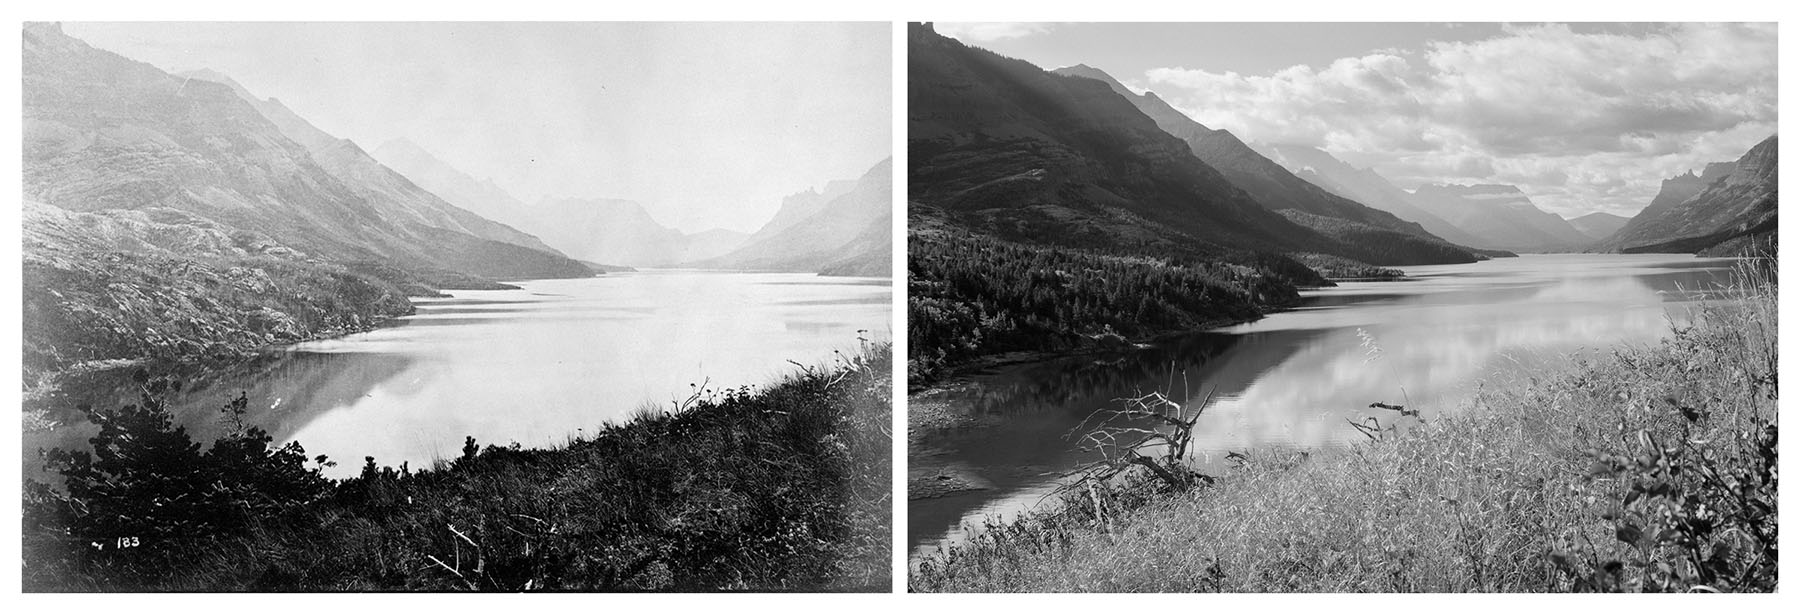 1874 Dawson photograph beside 2007 reenacted photograph from the same location